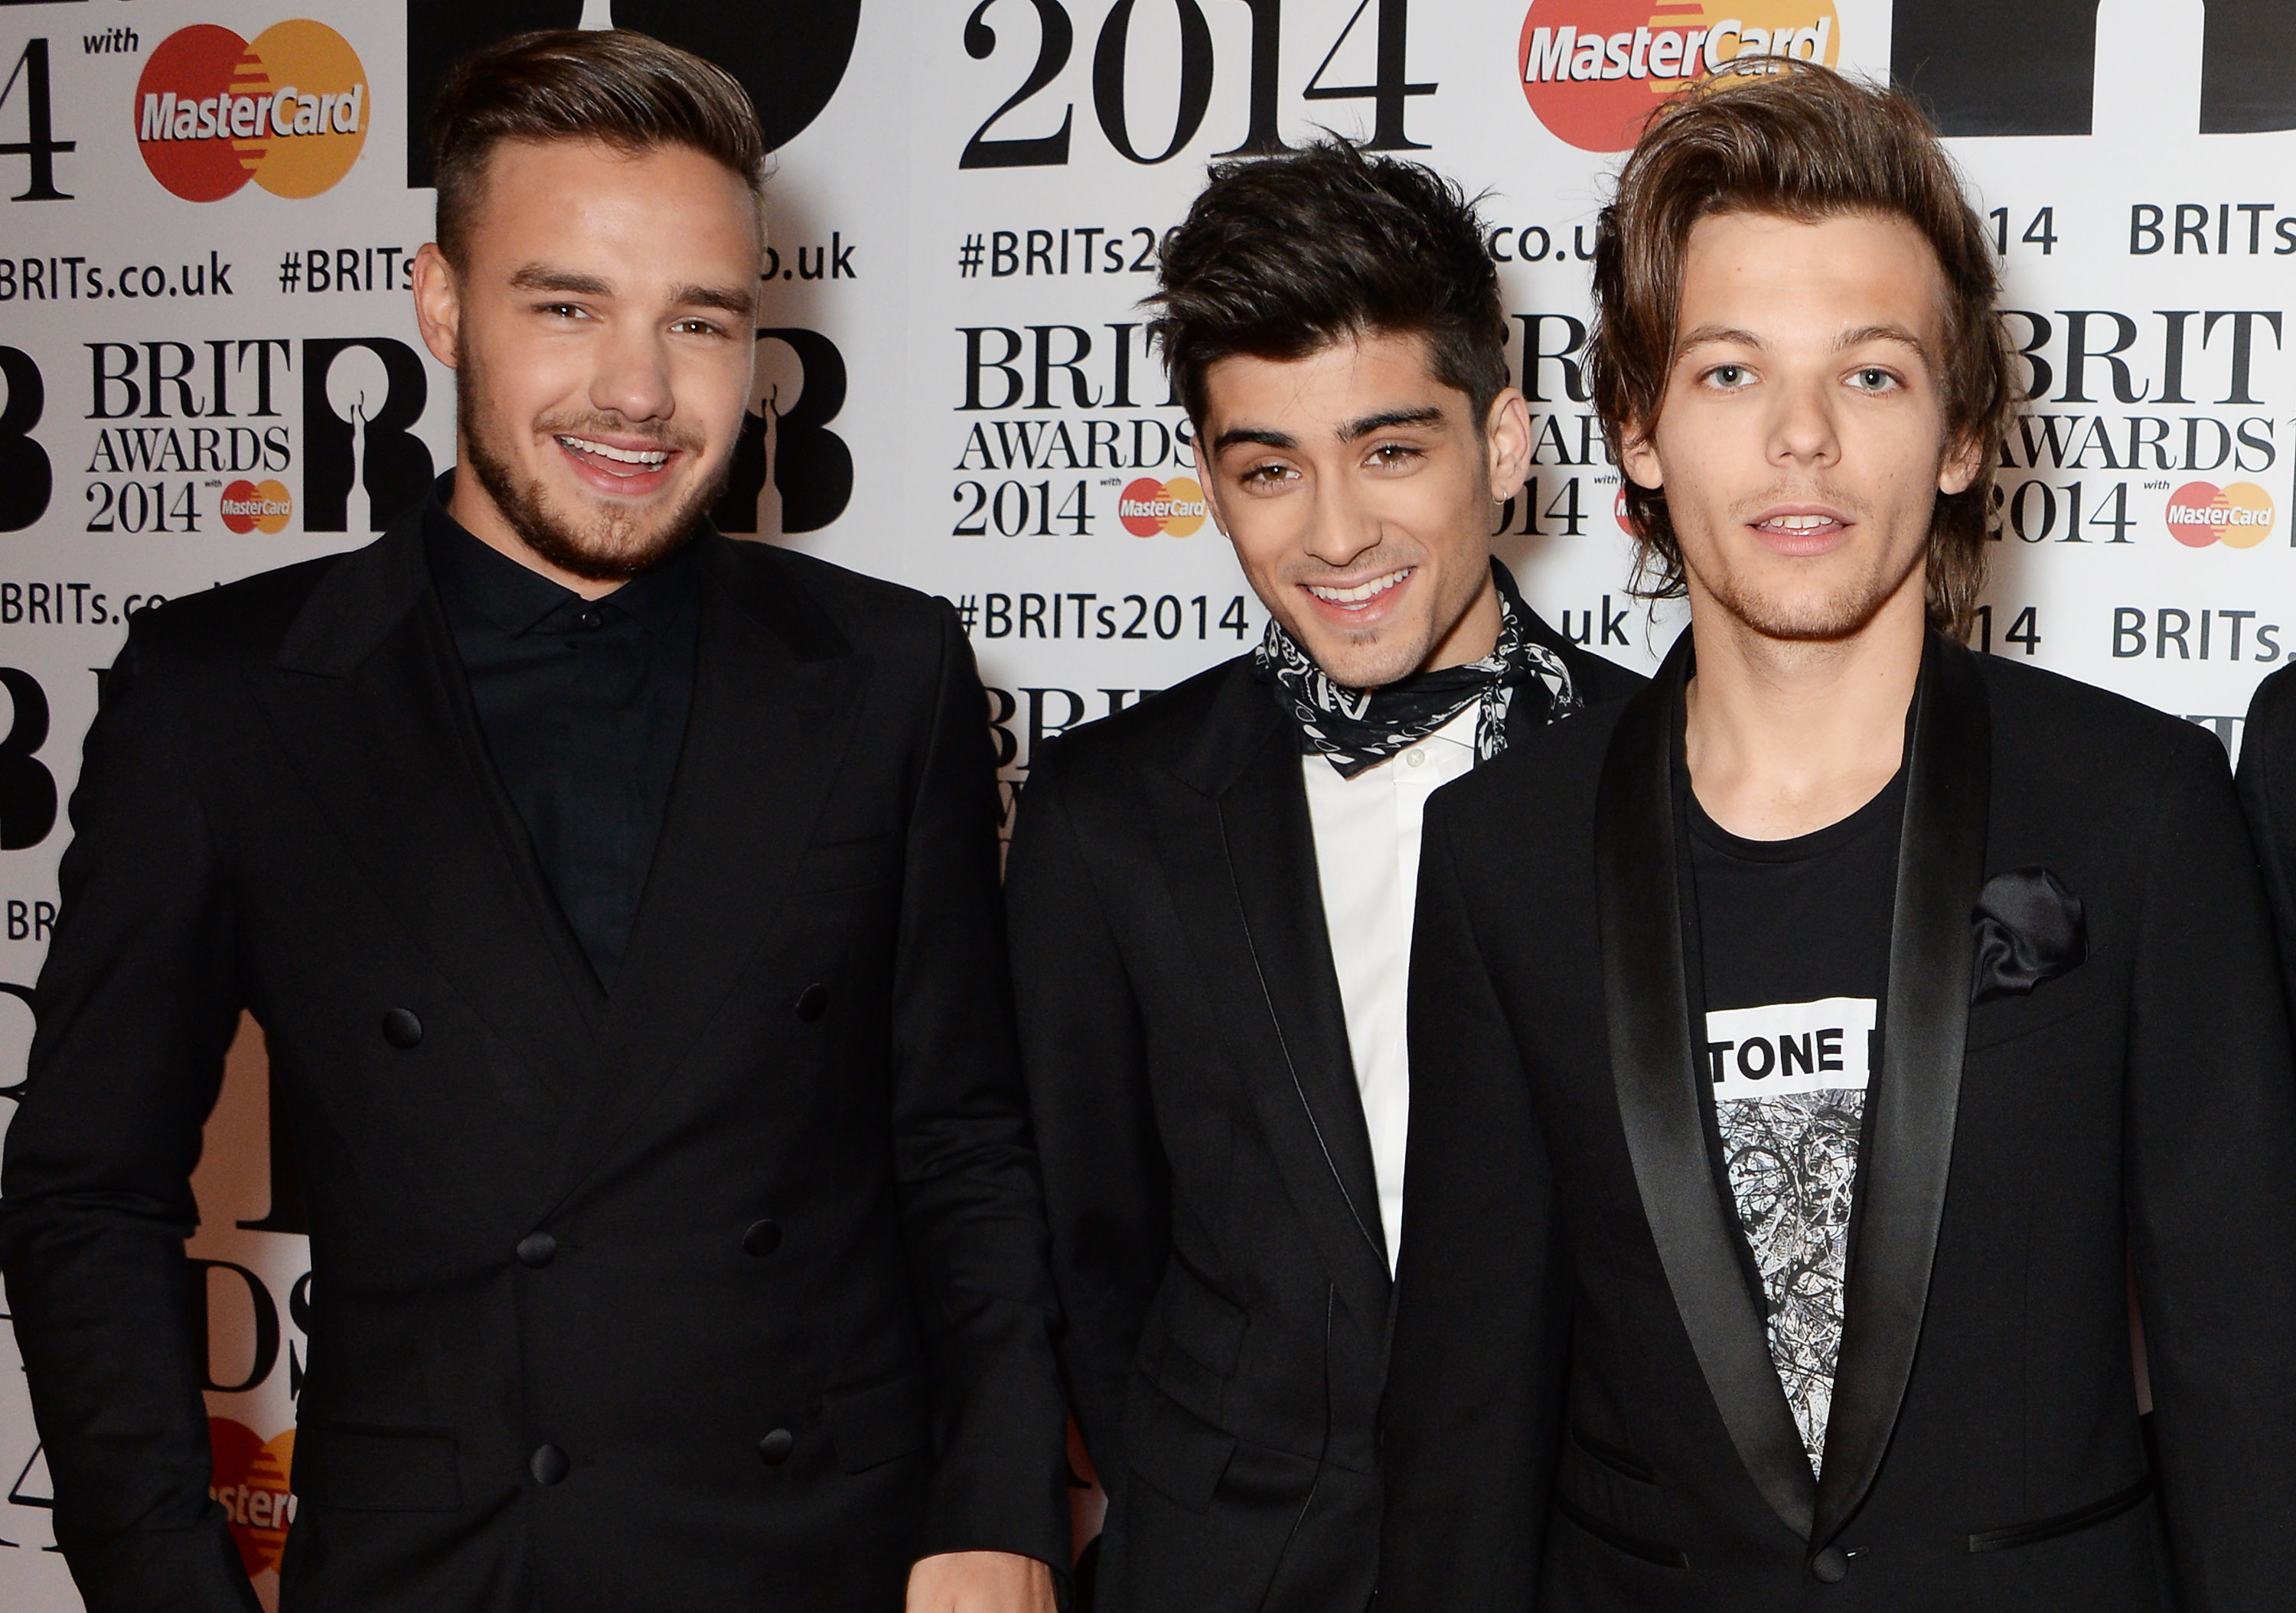 Liam Payne shouted out Zayn Malik's birthday, and 1D fans do not know what to do